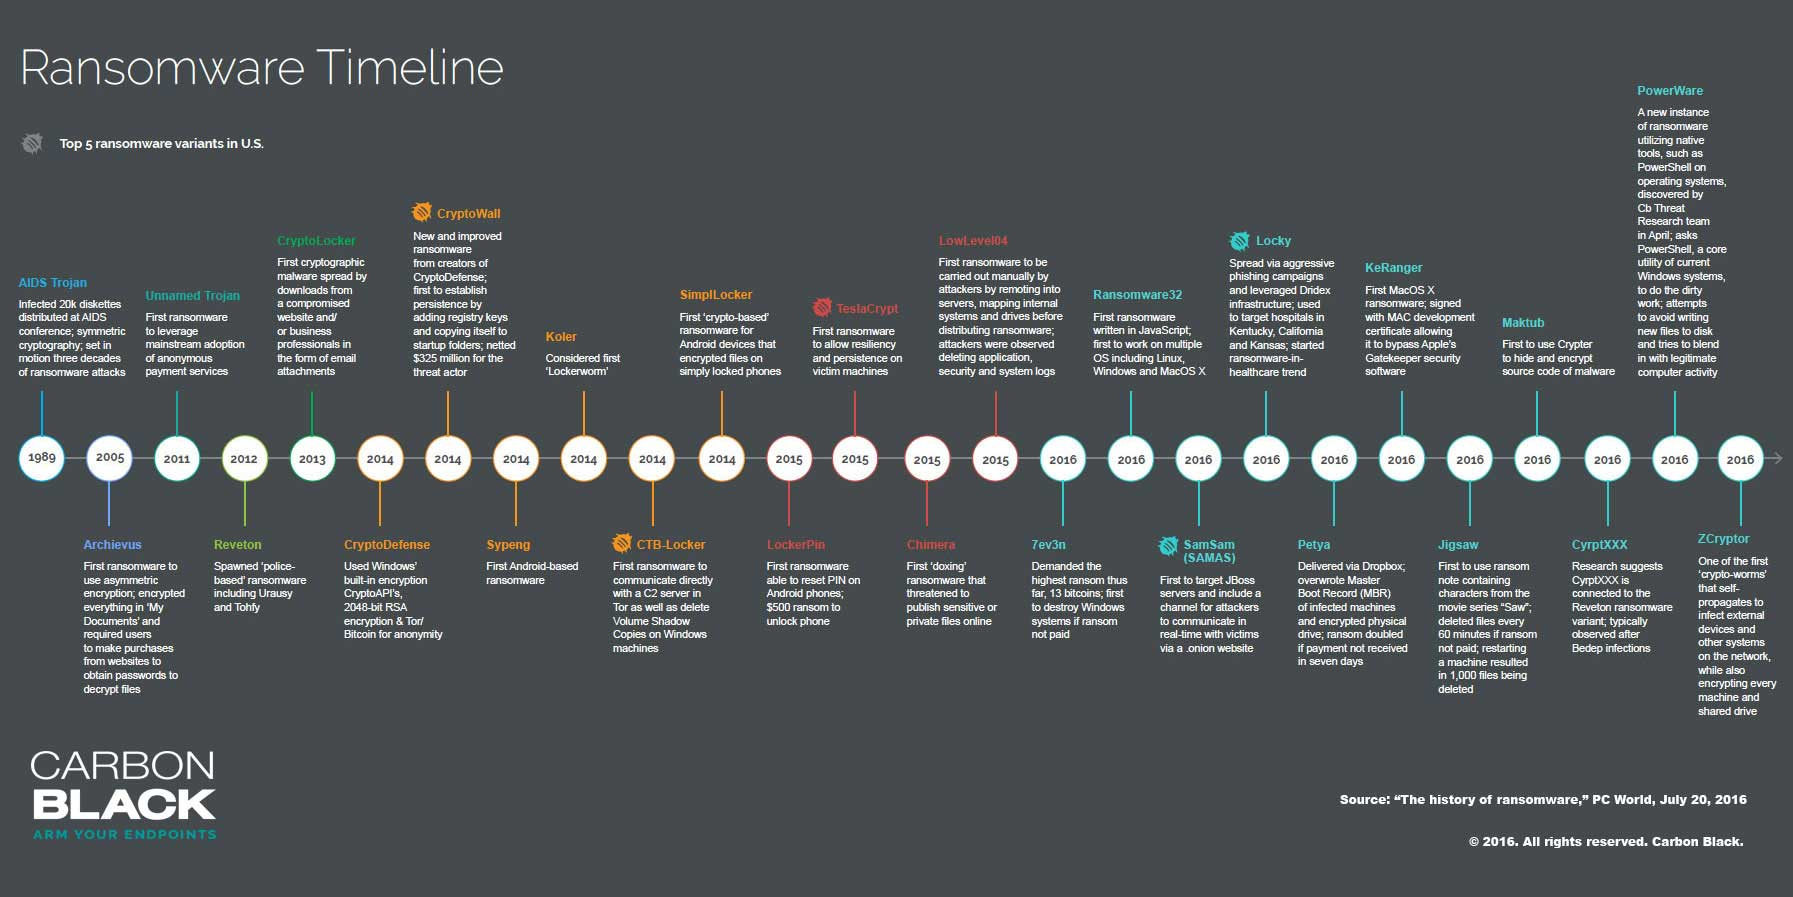 Ransomware Timeline And Brief History